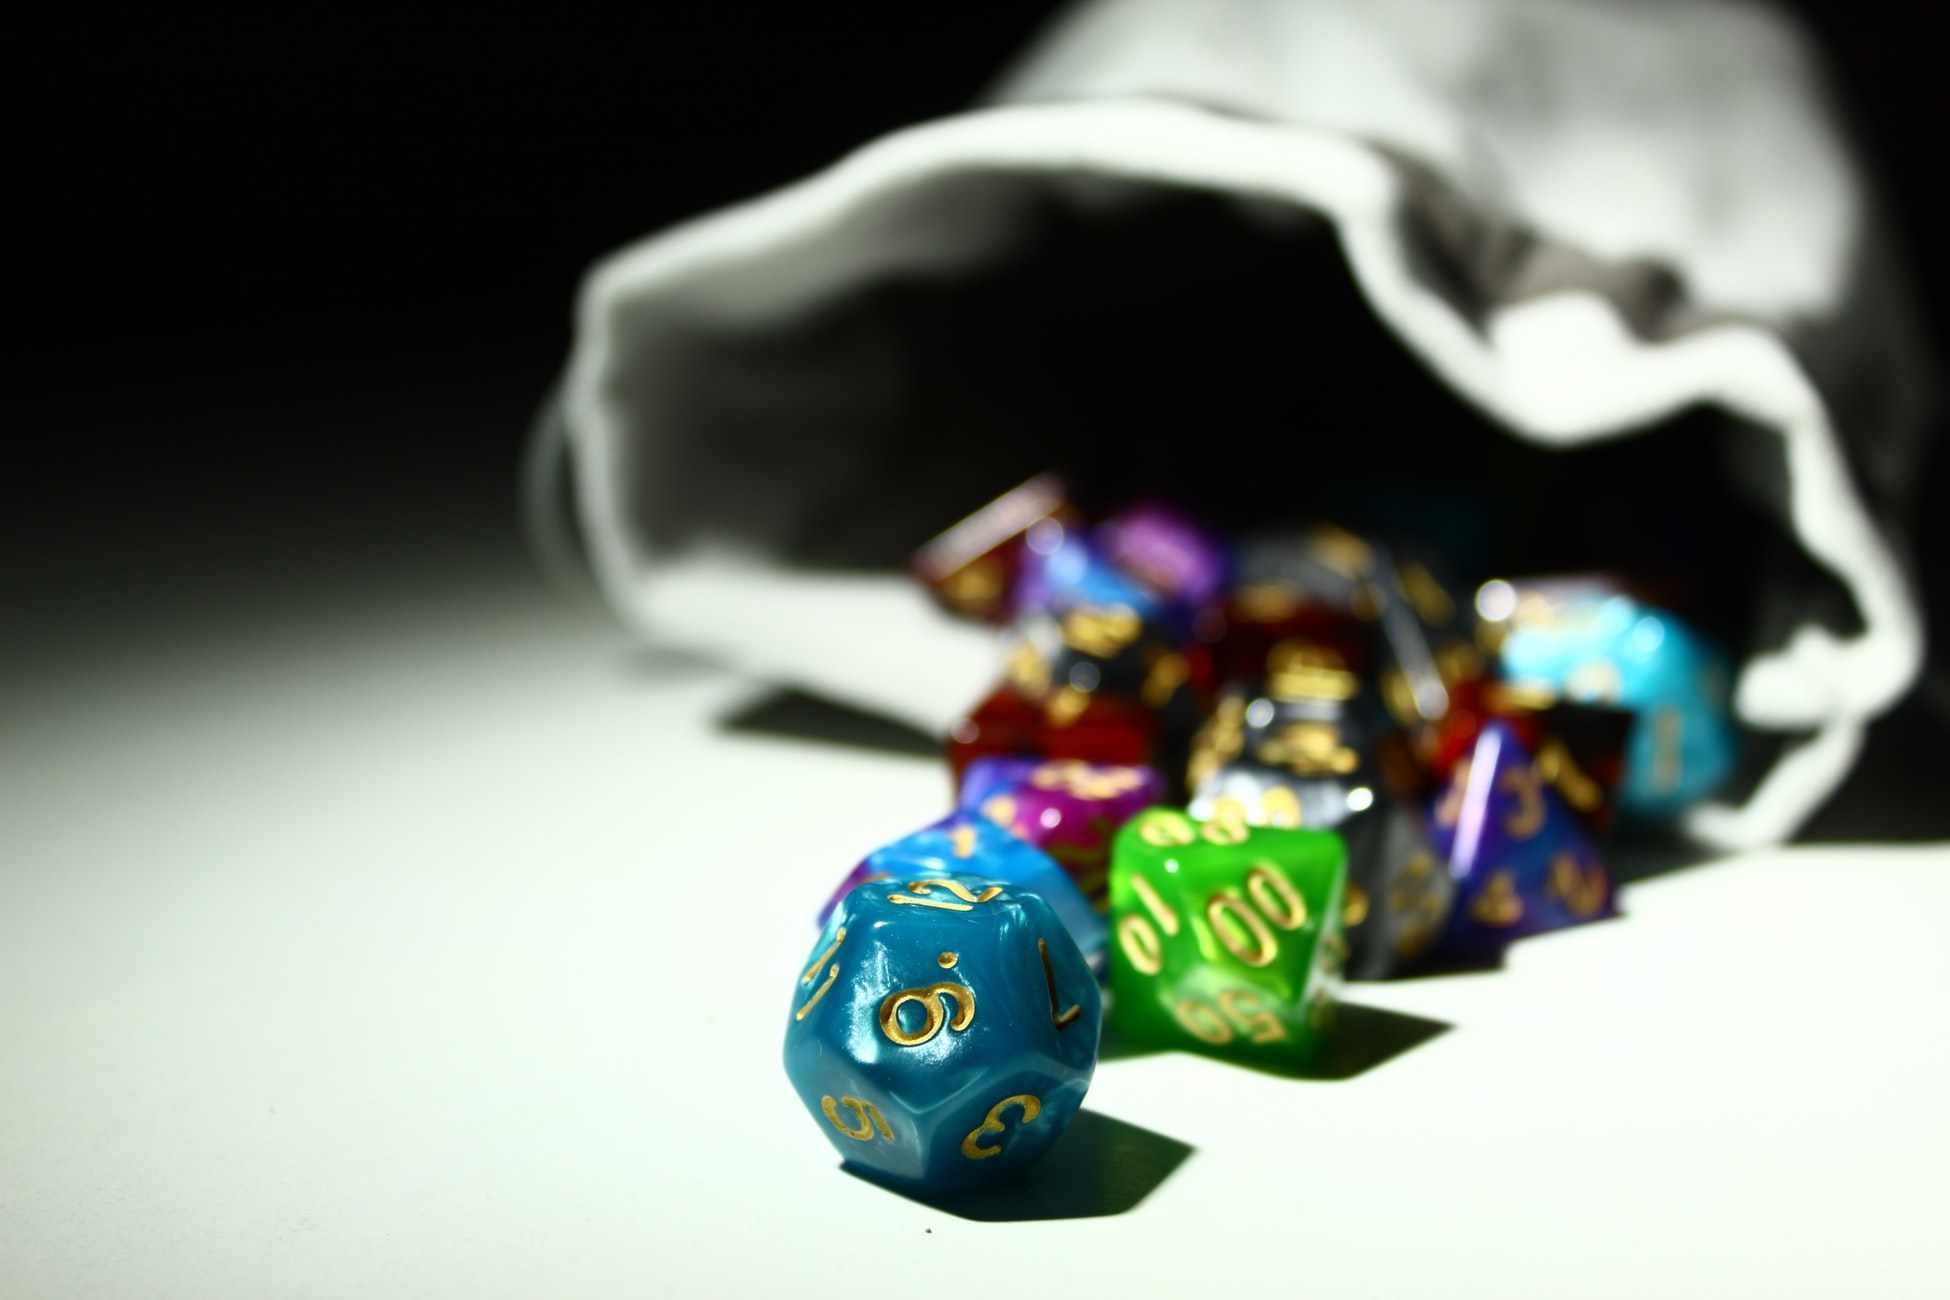 craps dice games that appeal to your geeky side